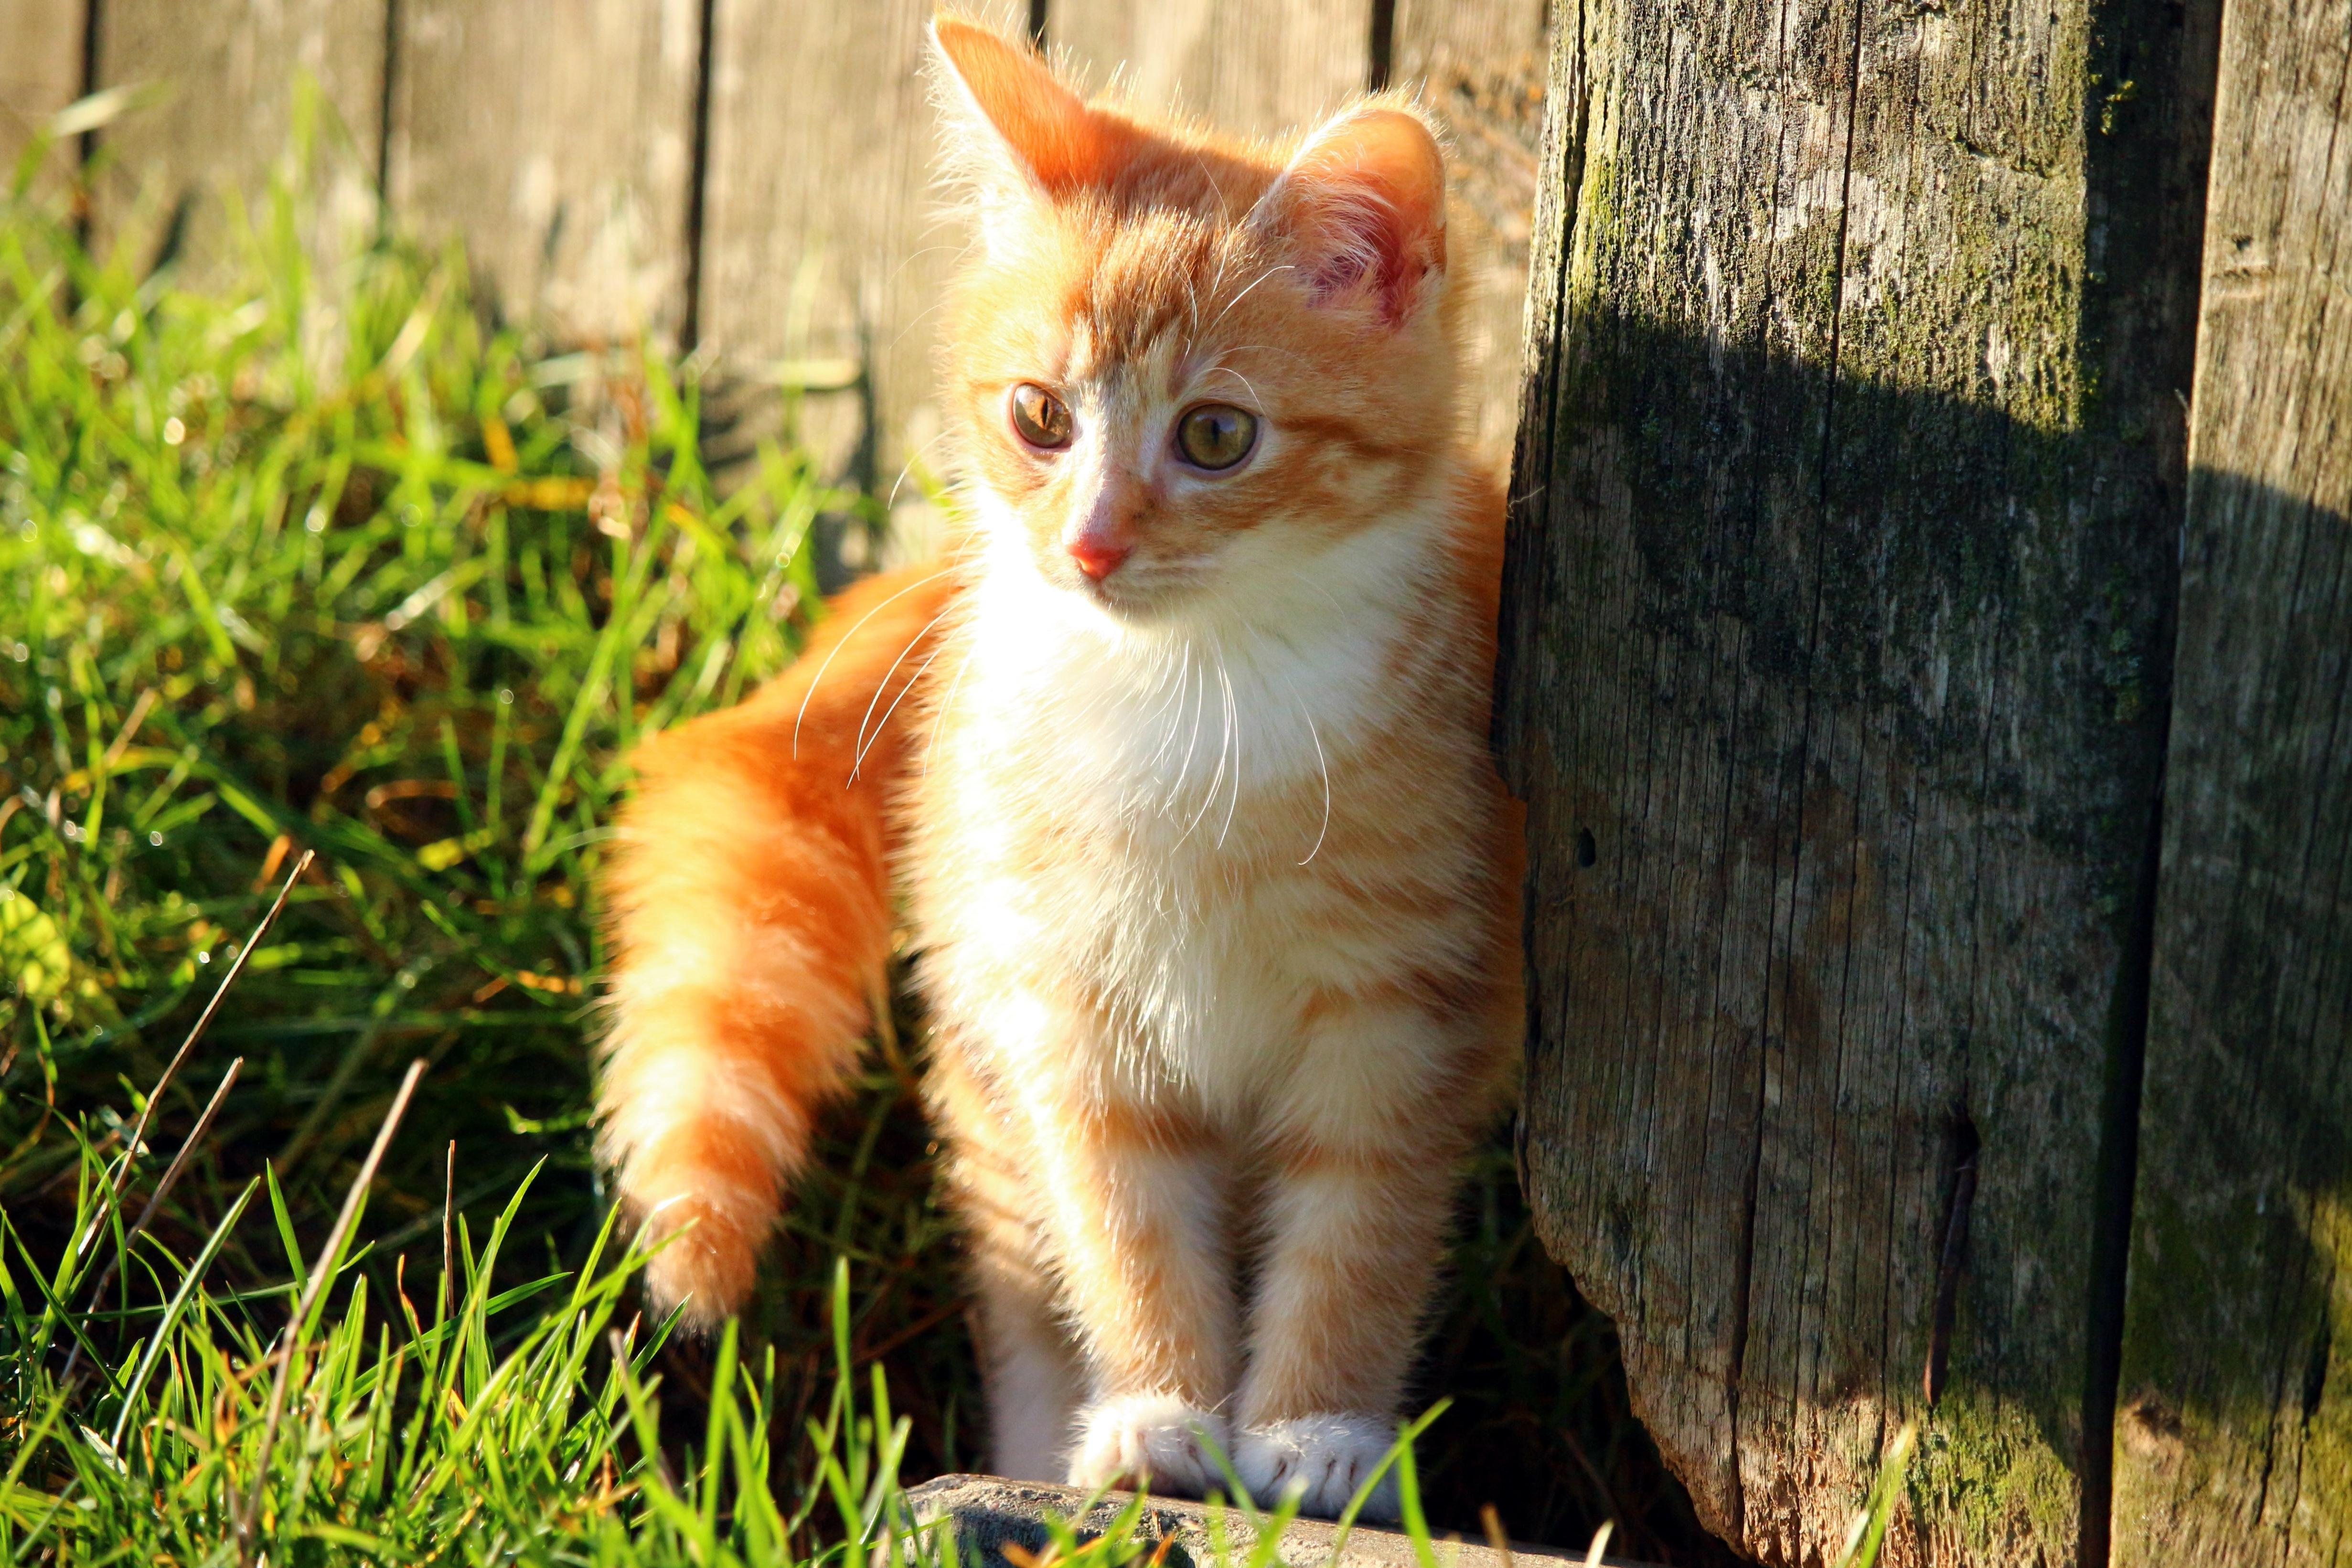 Free picture cute cat animal nature sunshine shadow kitten